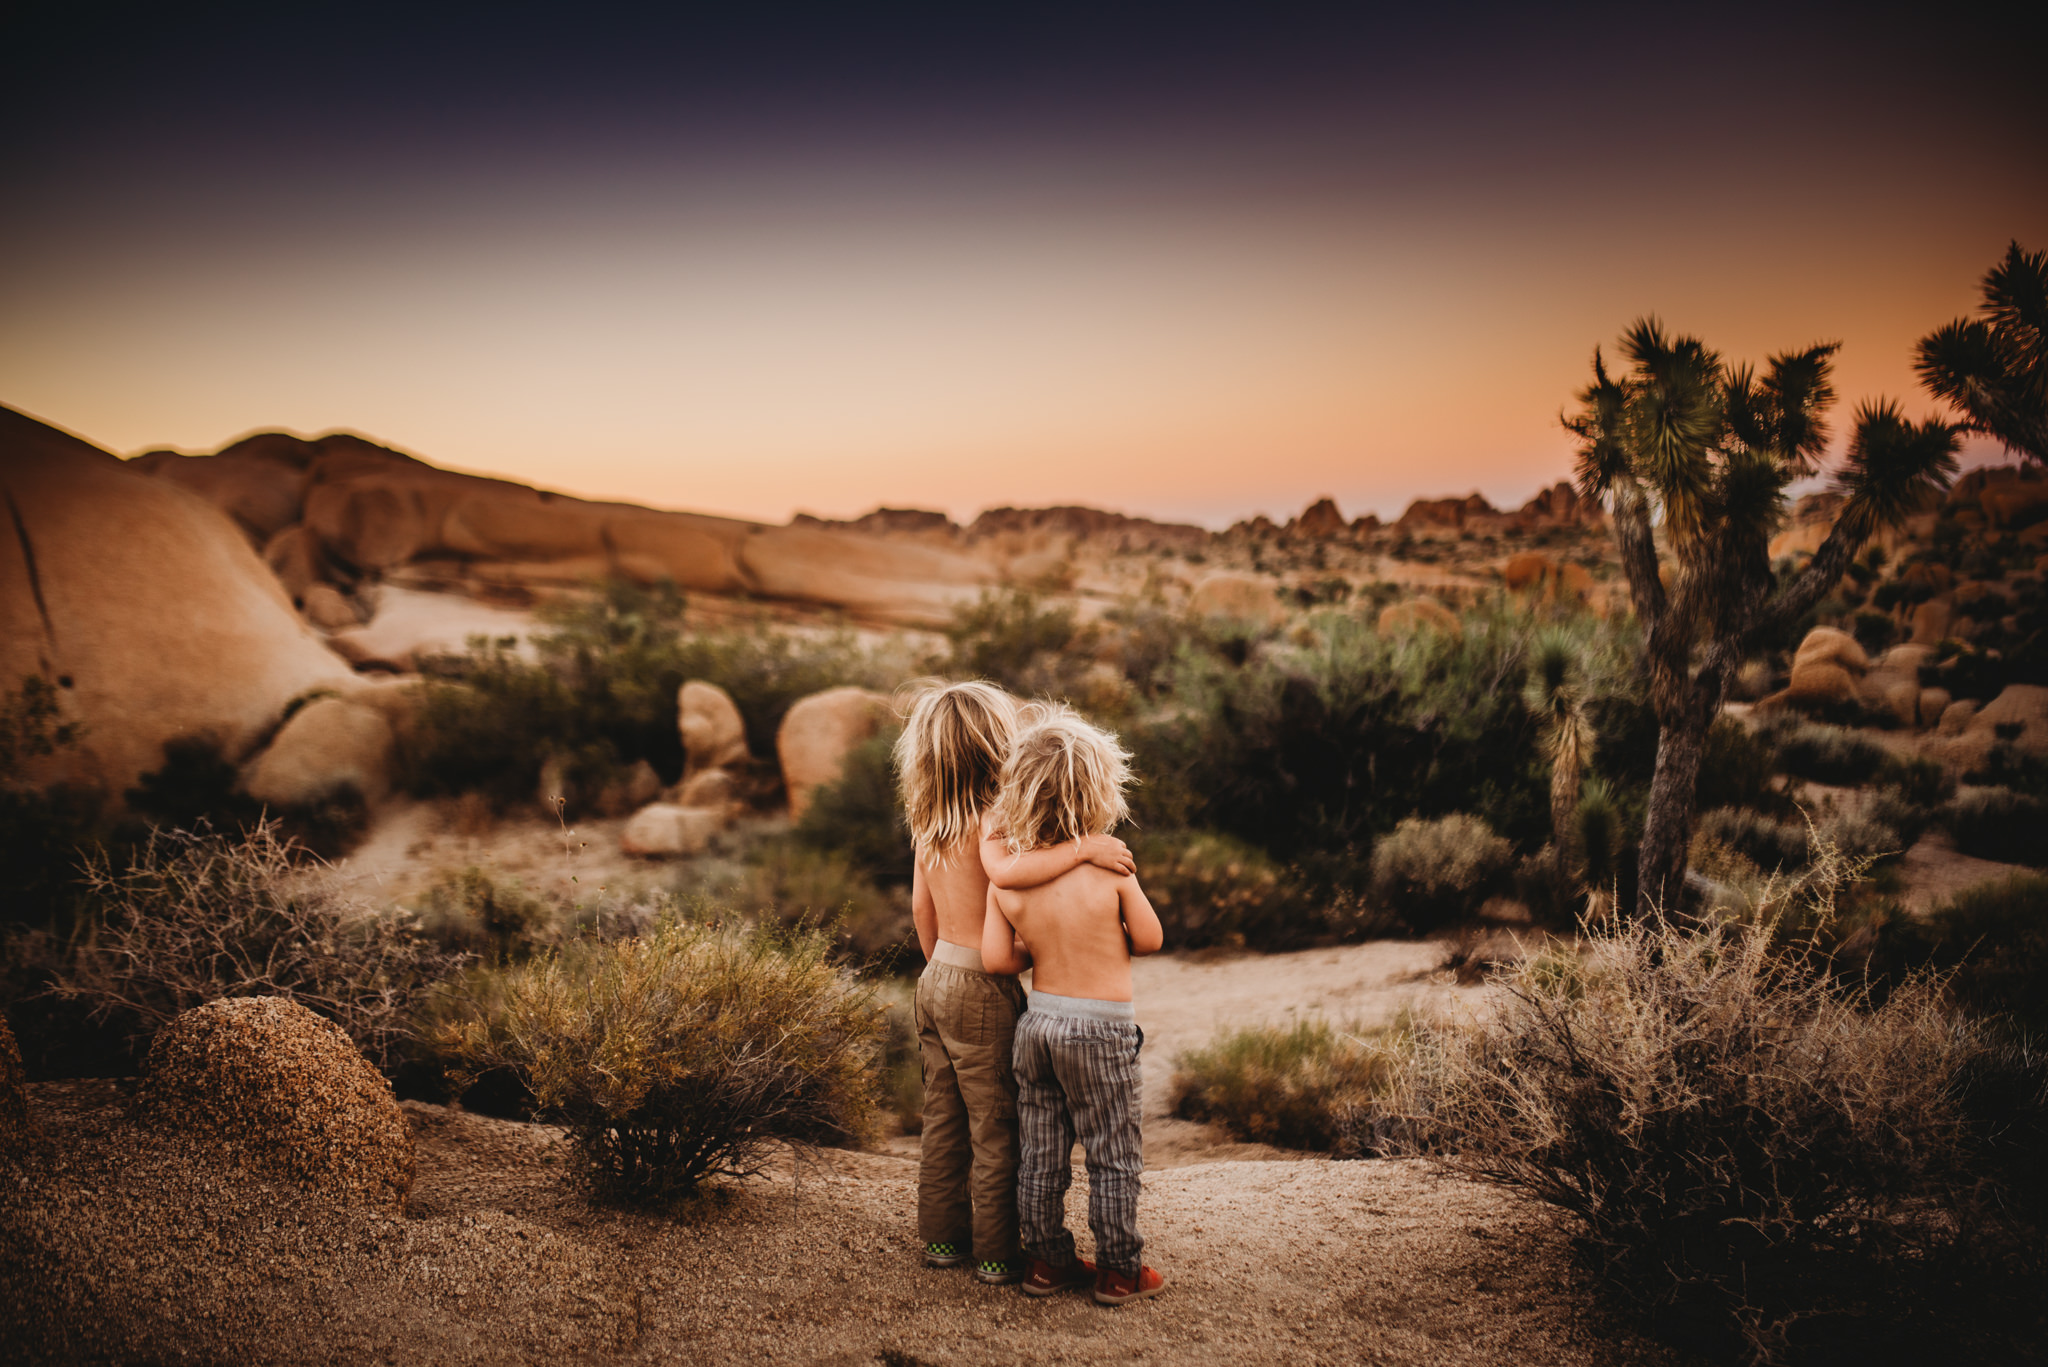 Two children are embracing each other and they are looking towards the moon.